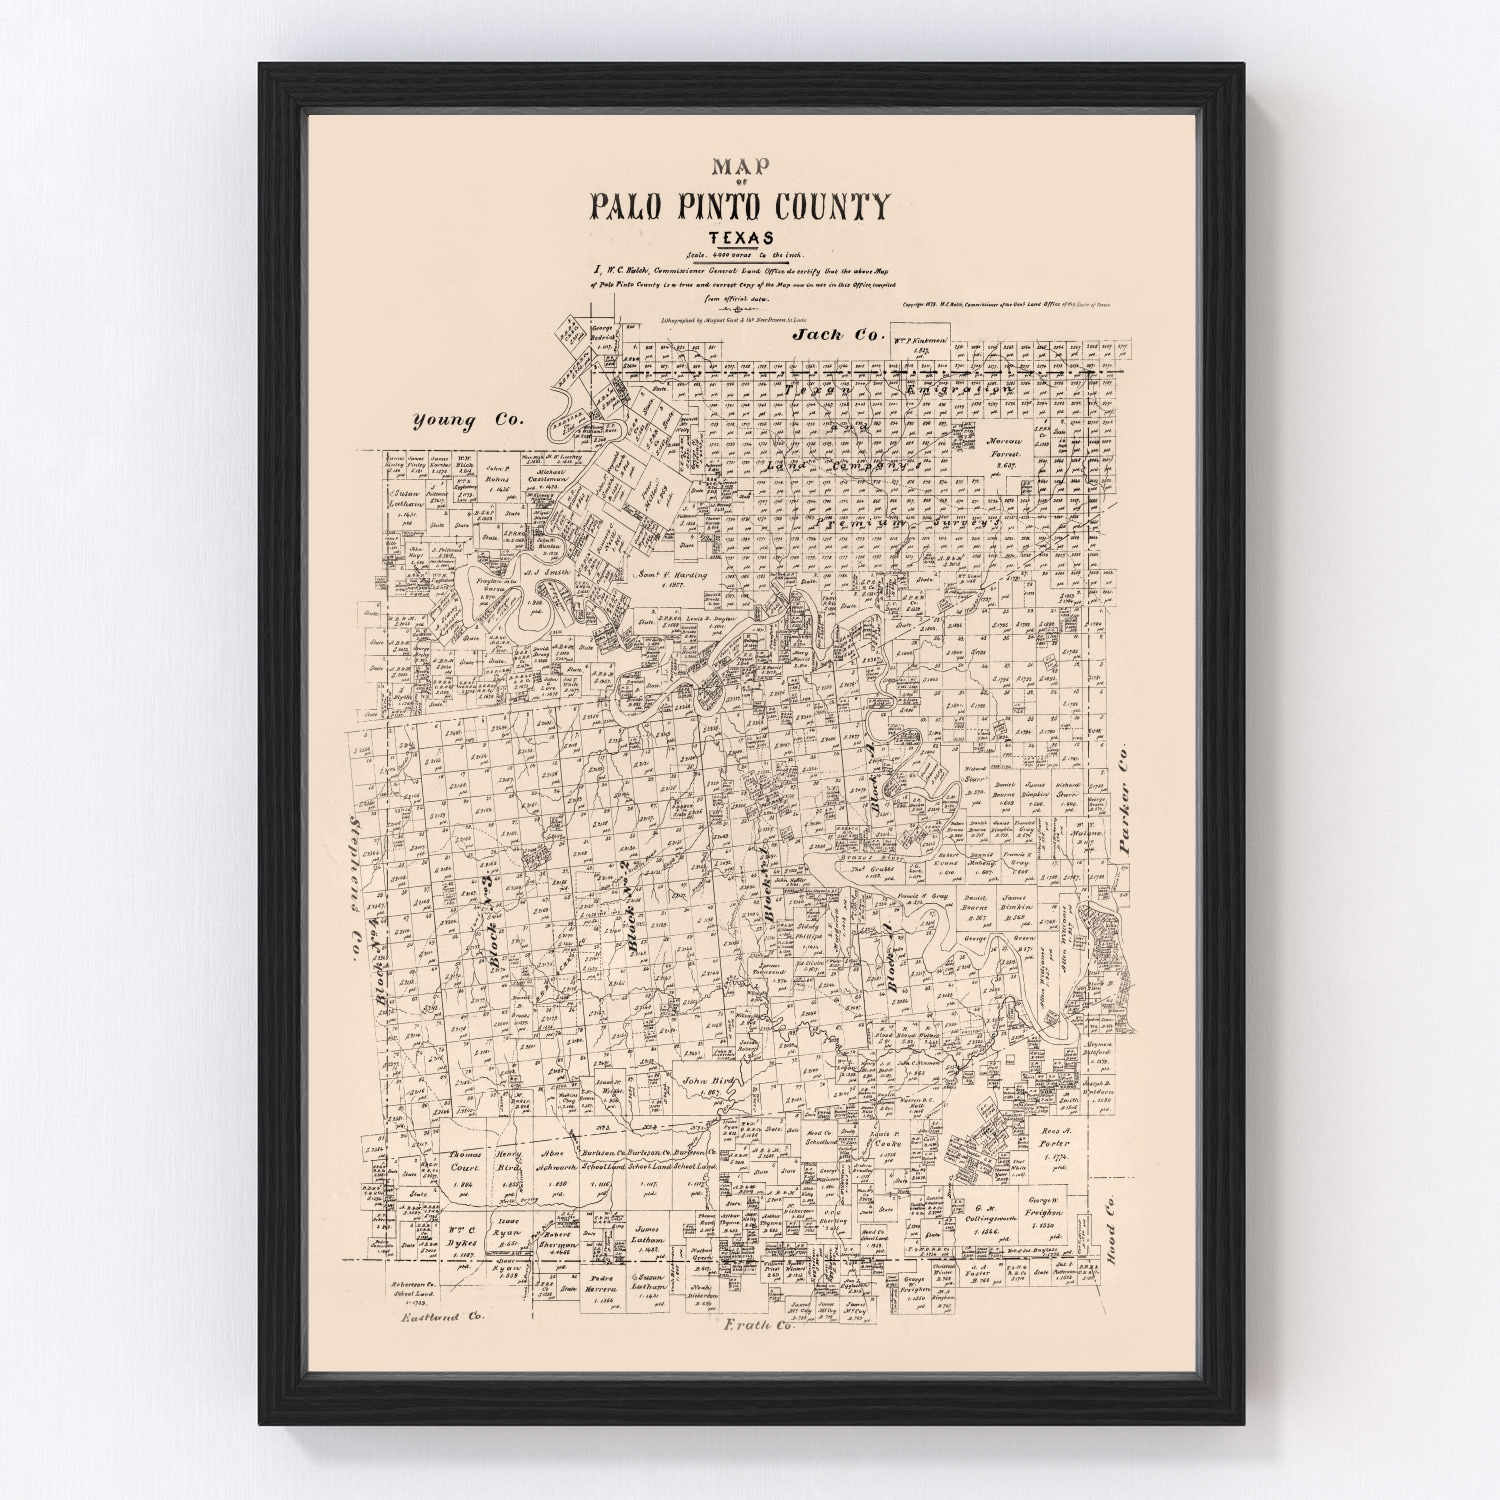 Vintage Map of Palo Pinto County, Texas 1879